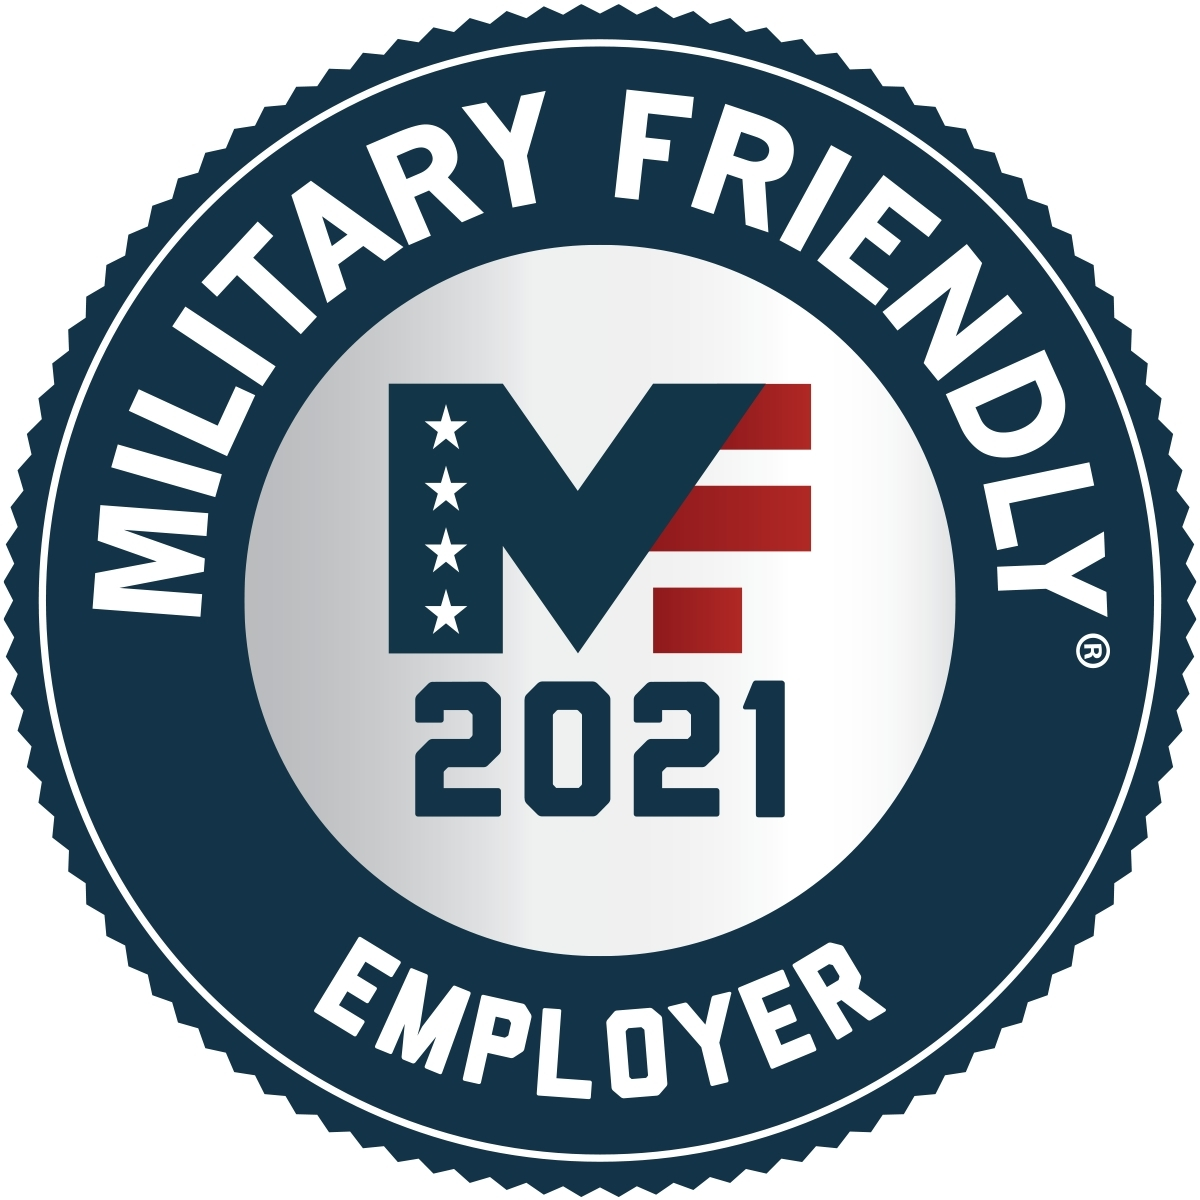 Ryder has earned the Military Friendly Employer recognition for two consecutive years. (Graphic: Business Wire)